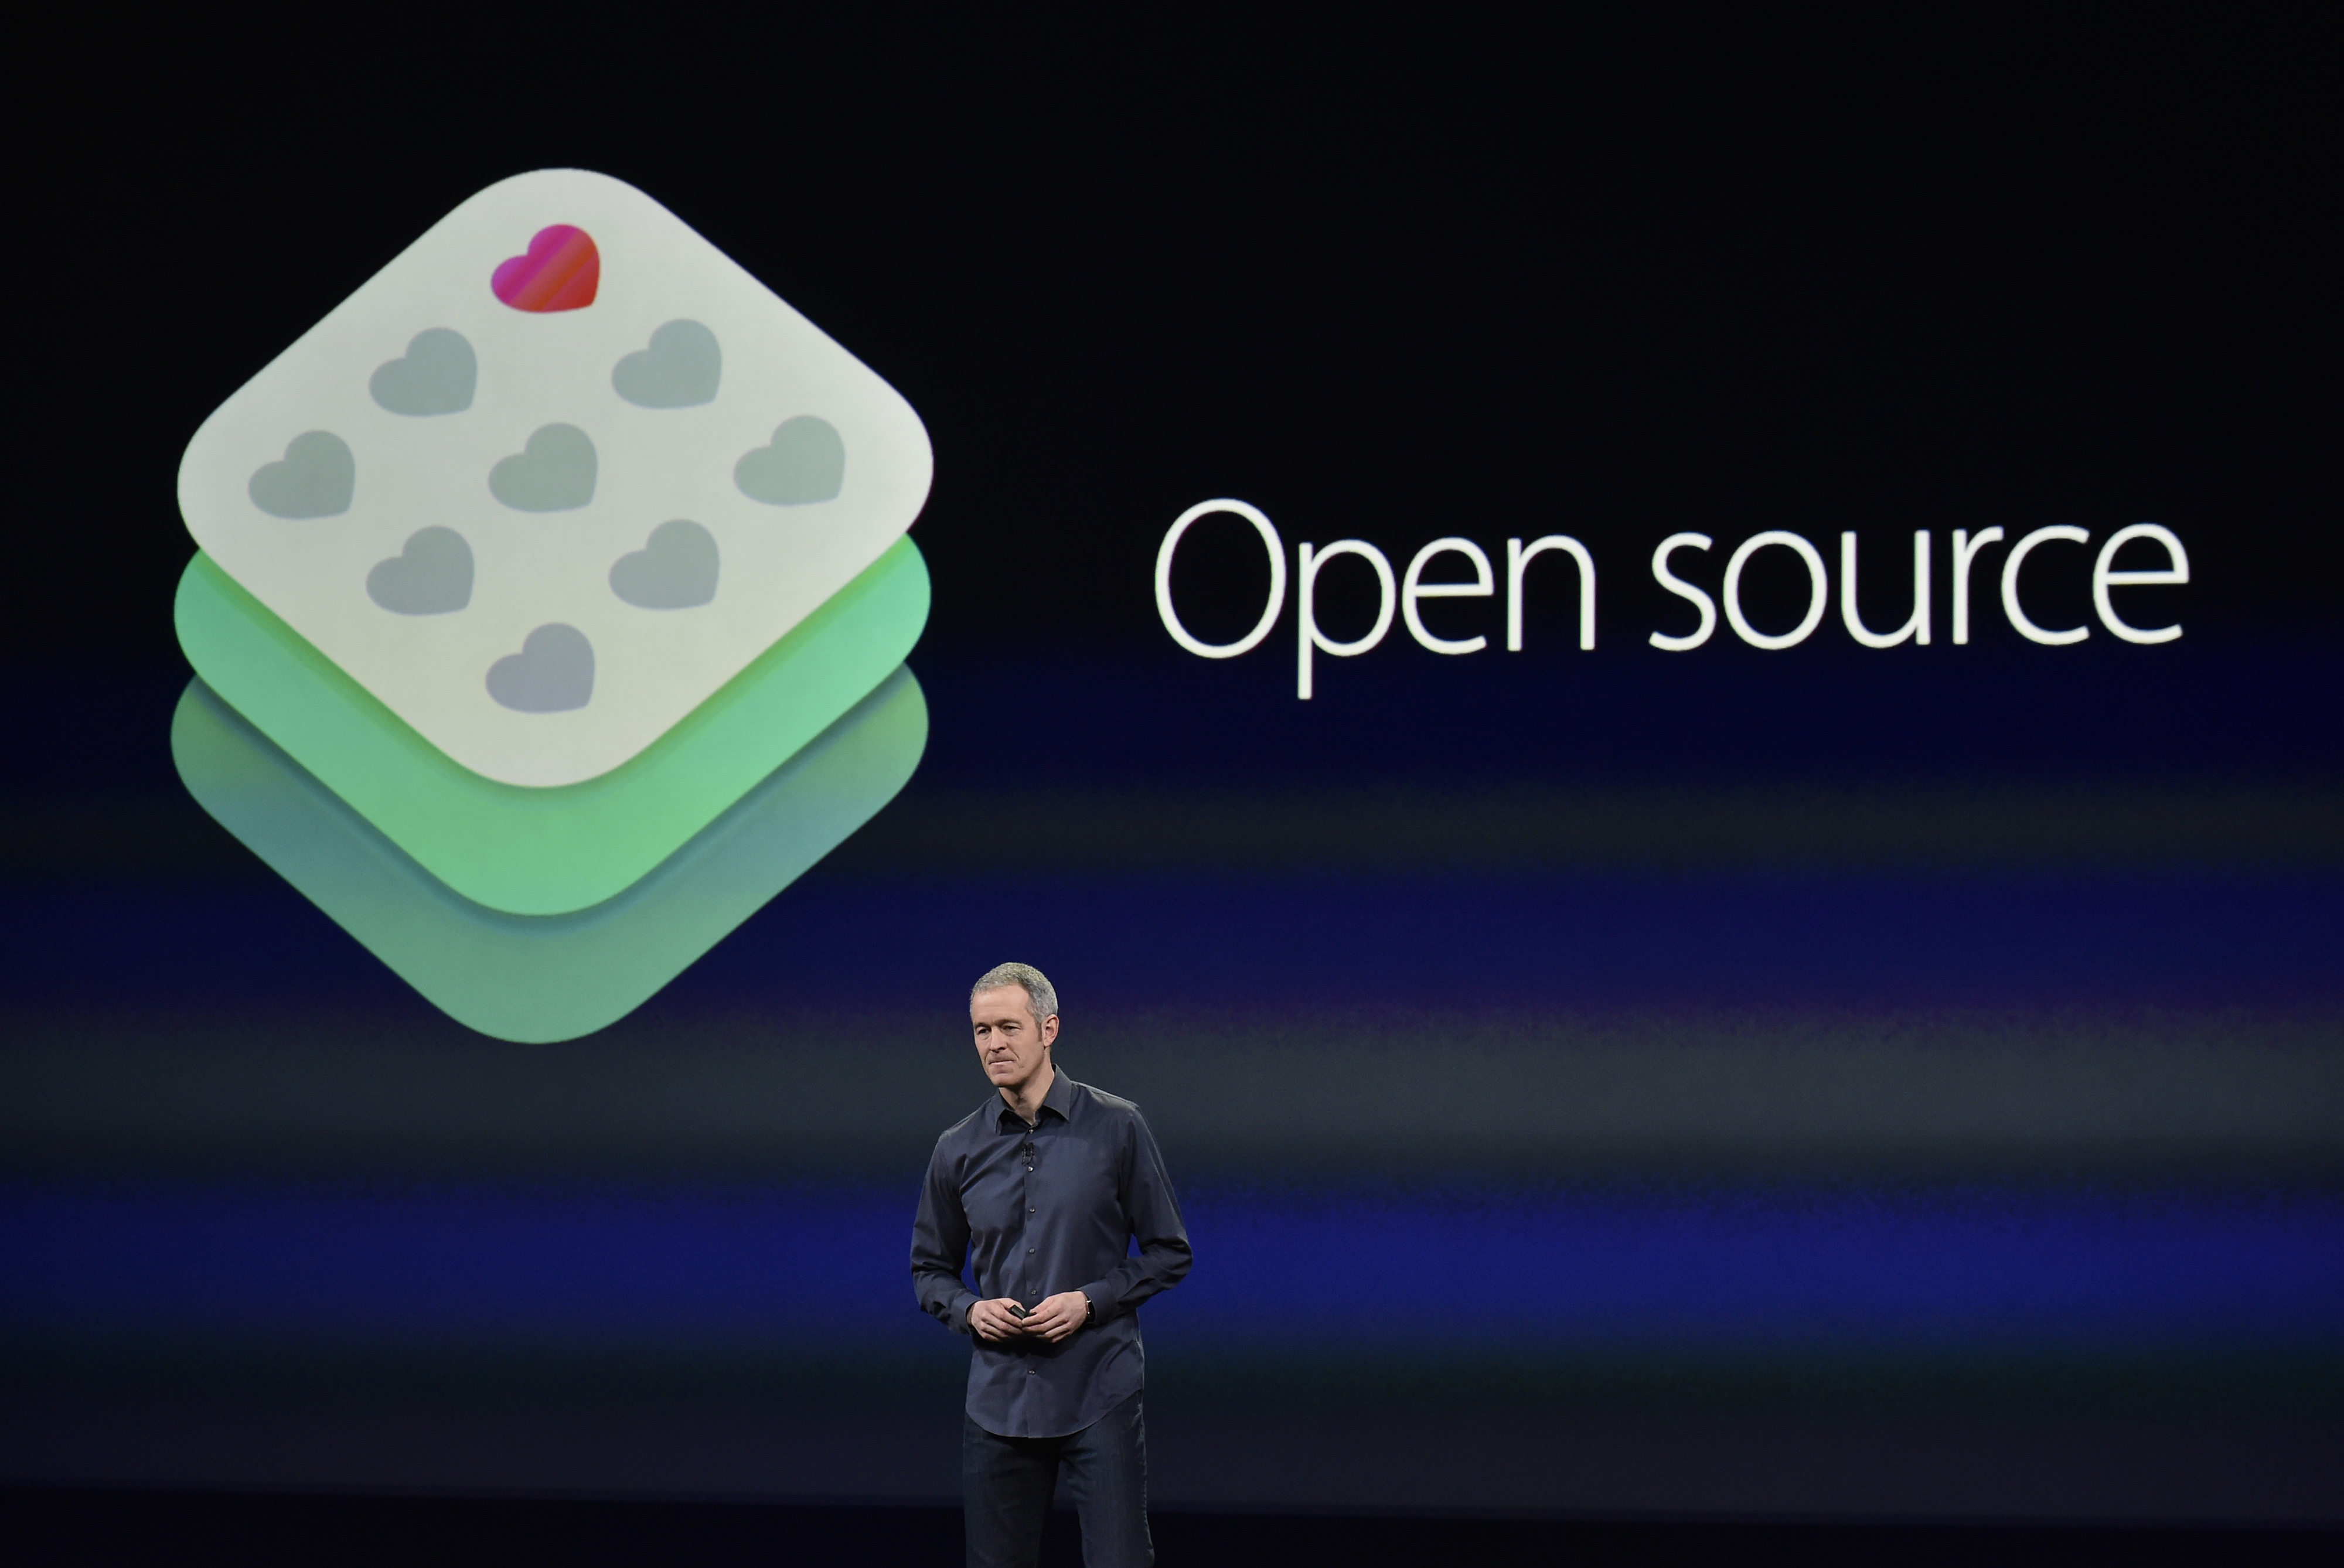 Jeff Williams, senior vice president of operations for Apple Inc., speaks during the Apple event in San Francisco on March 9, 2015.